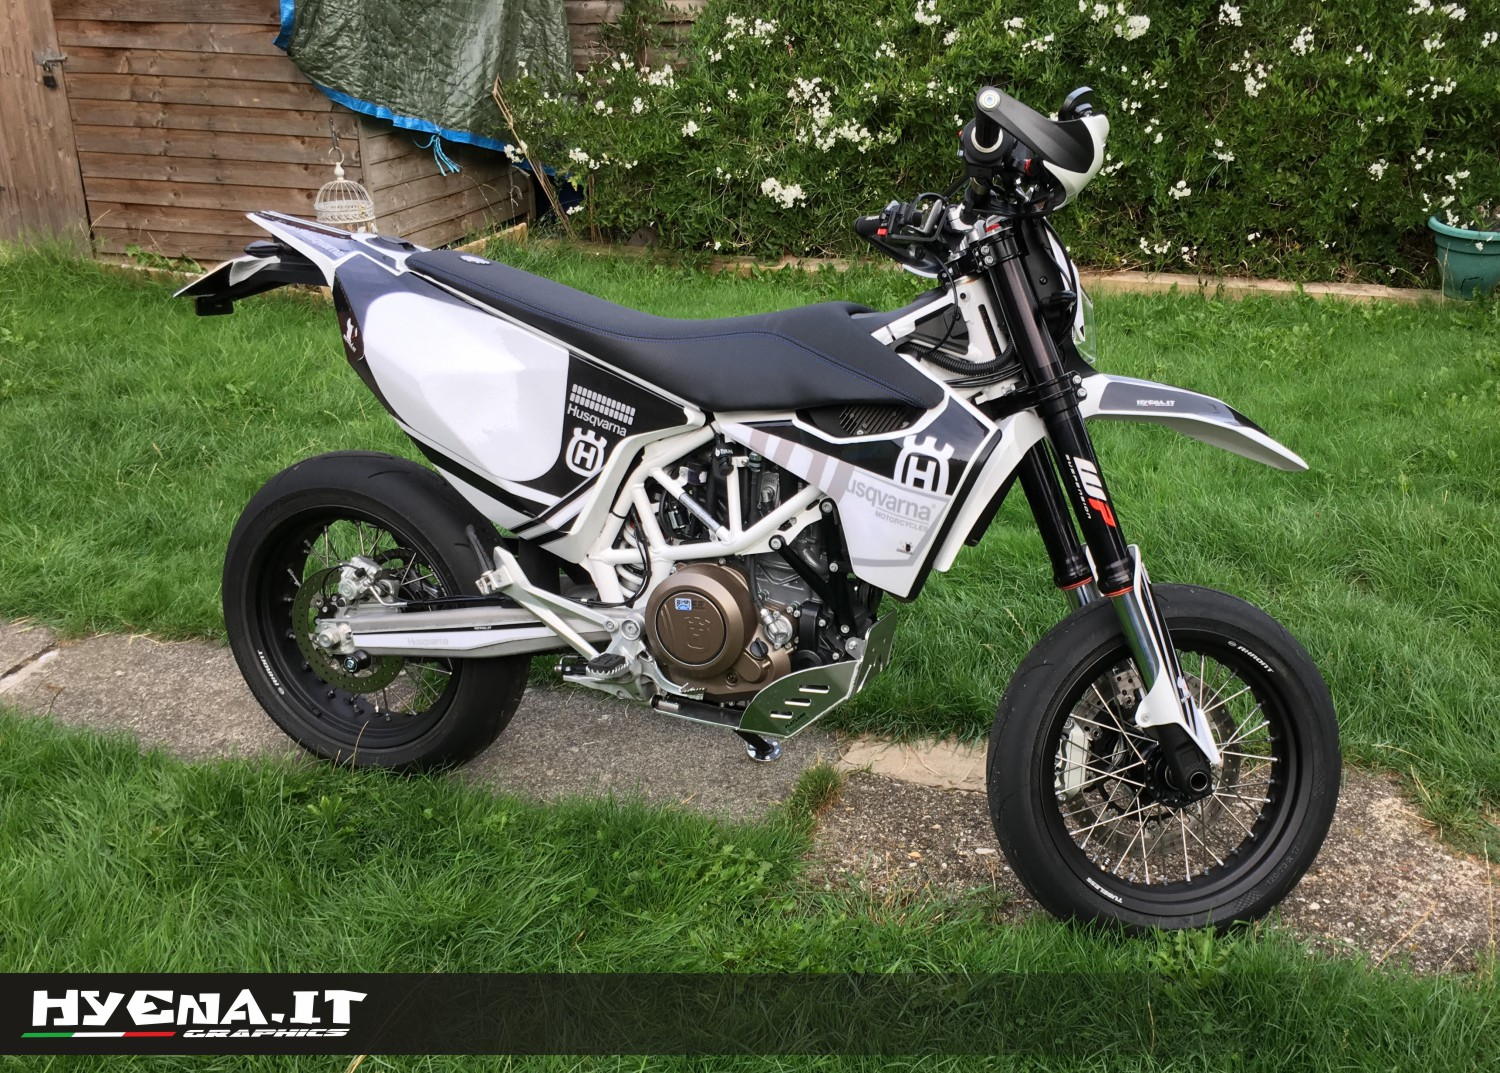 grafiche personalizzate per husqvarna 701 supermoto. Black Bedroom Furniture Sets. Home Design Ideas